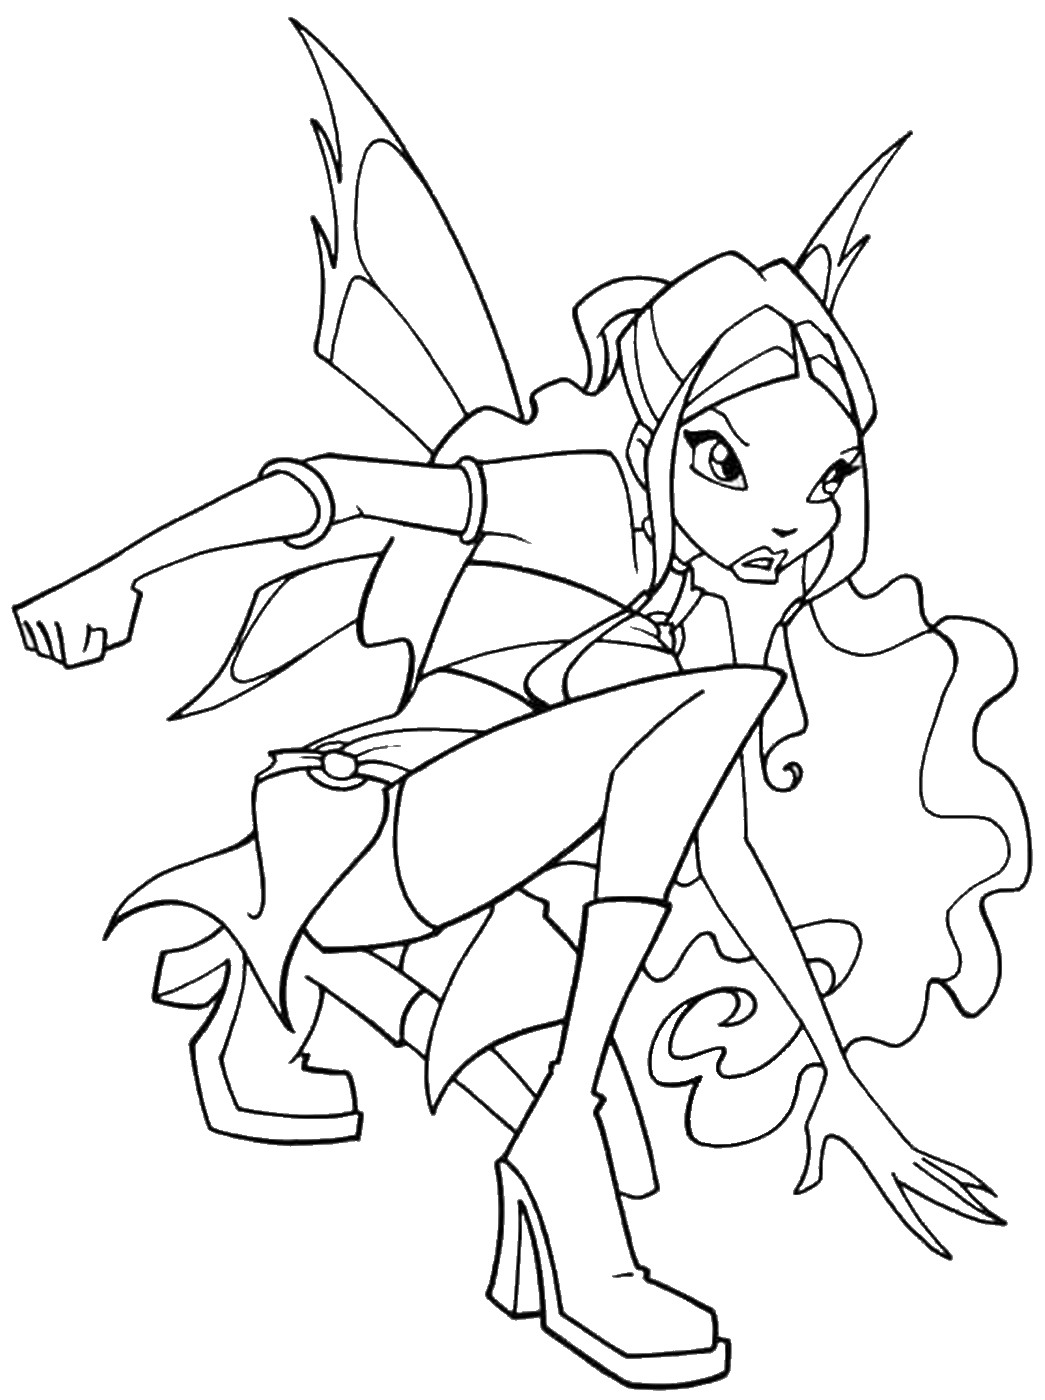 winx coloring pages online winx club stella coloring page free printable coloring pages coloring pages winx online